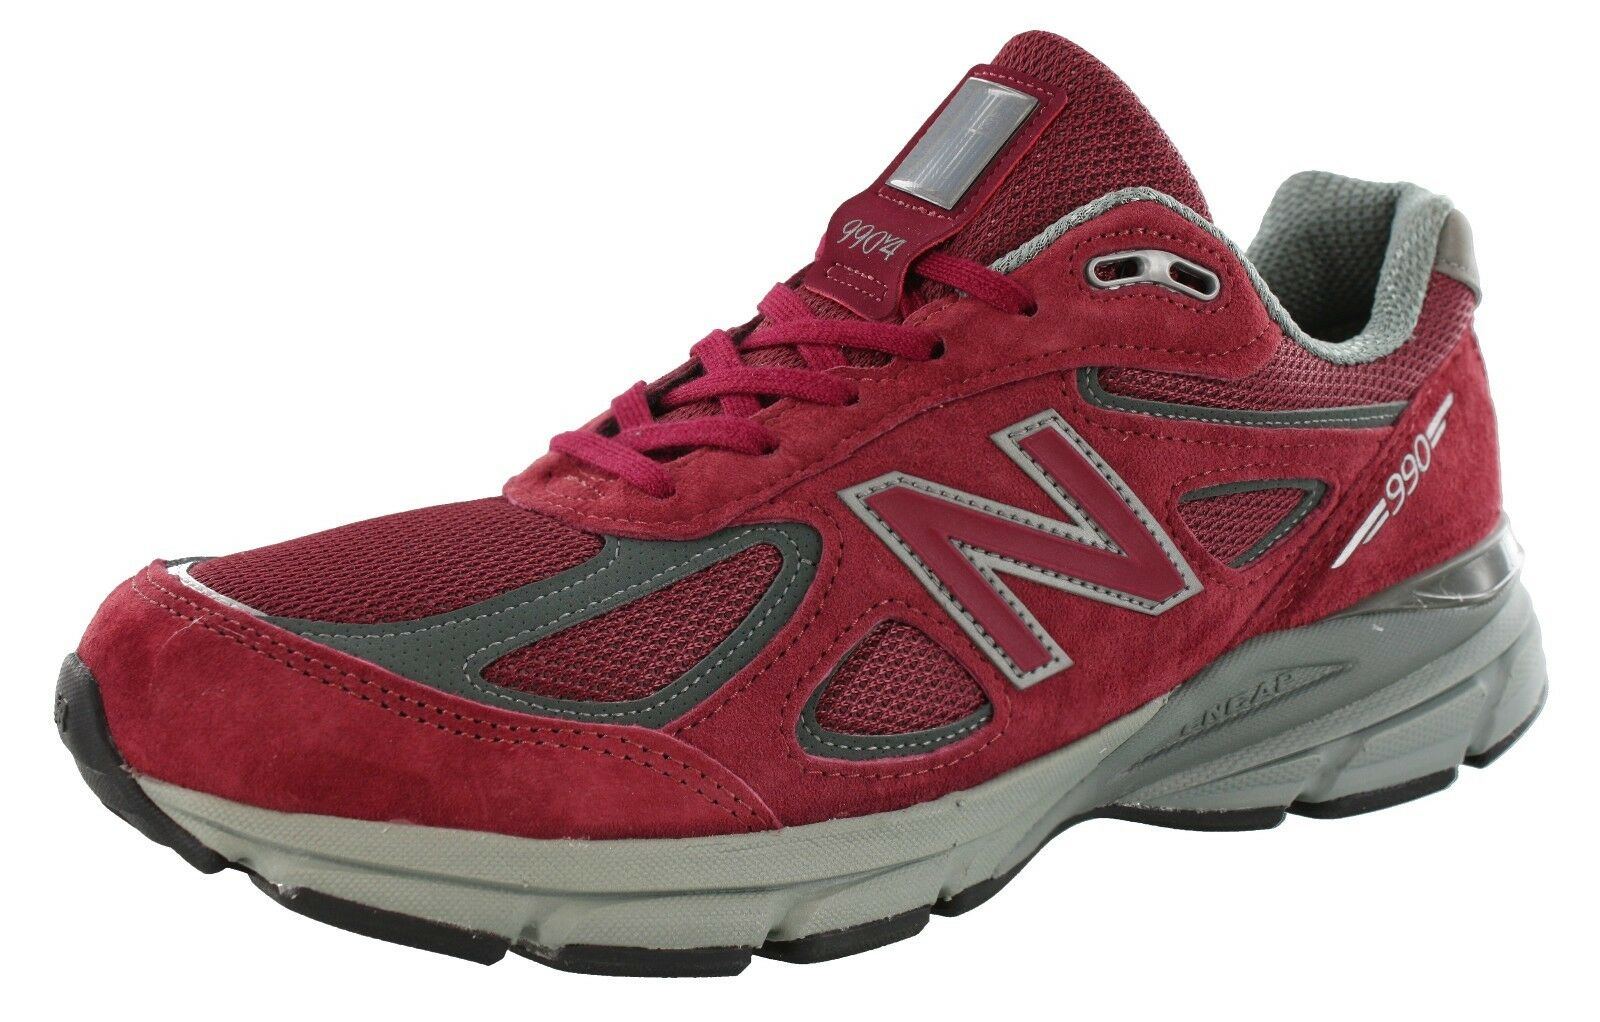 NEW BALANCE MEN'S M990BU4 D MADE IN THE USA RUNNING SHOES